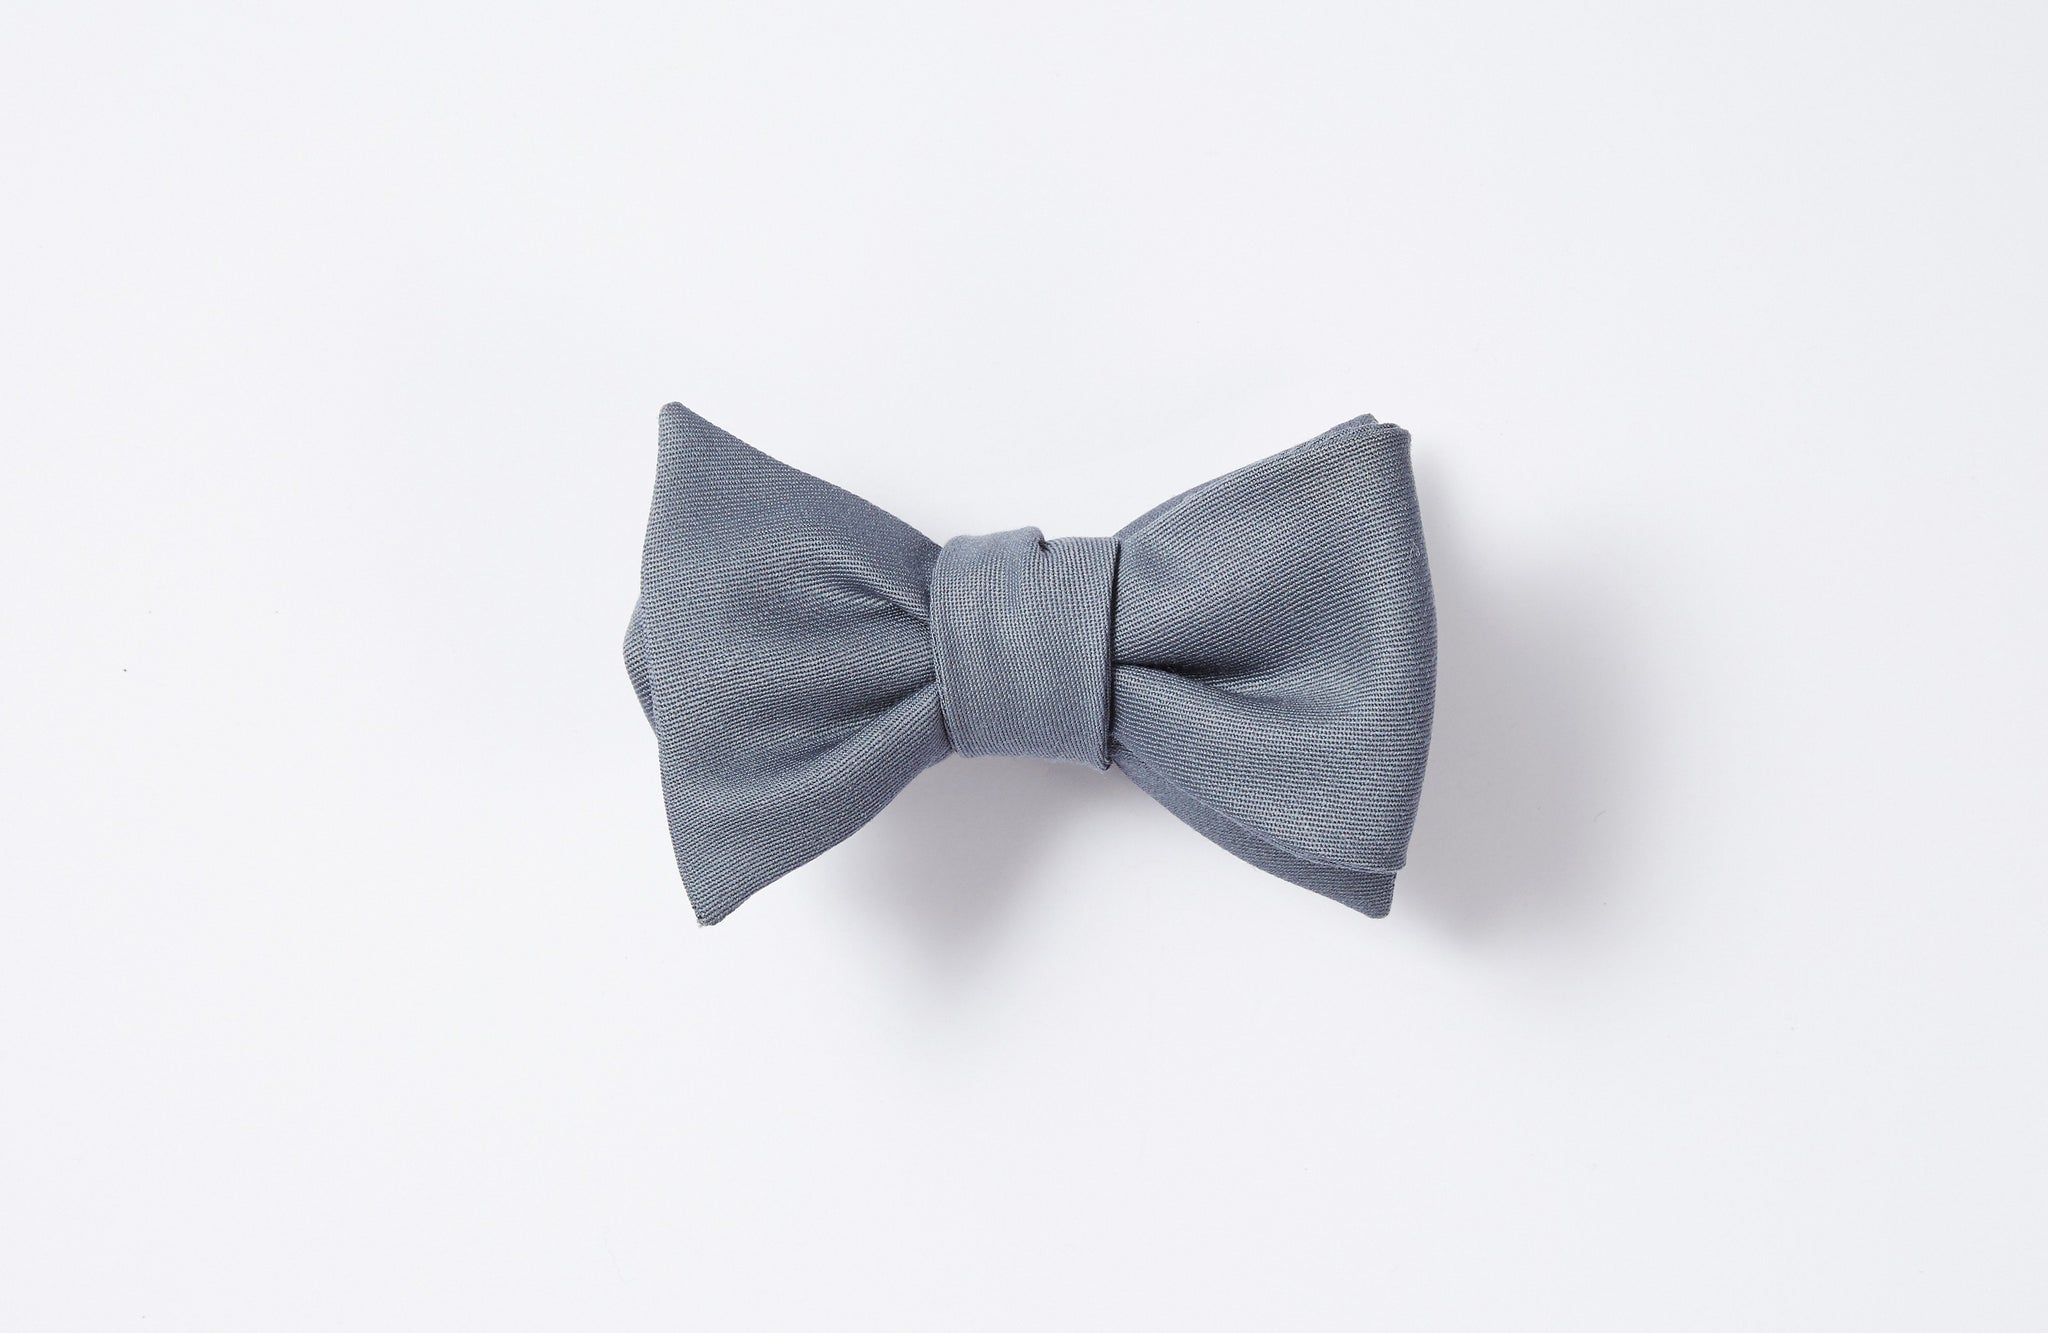 The Capital Bow Tie